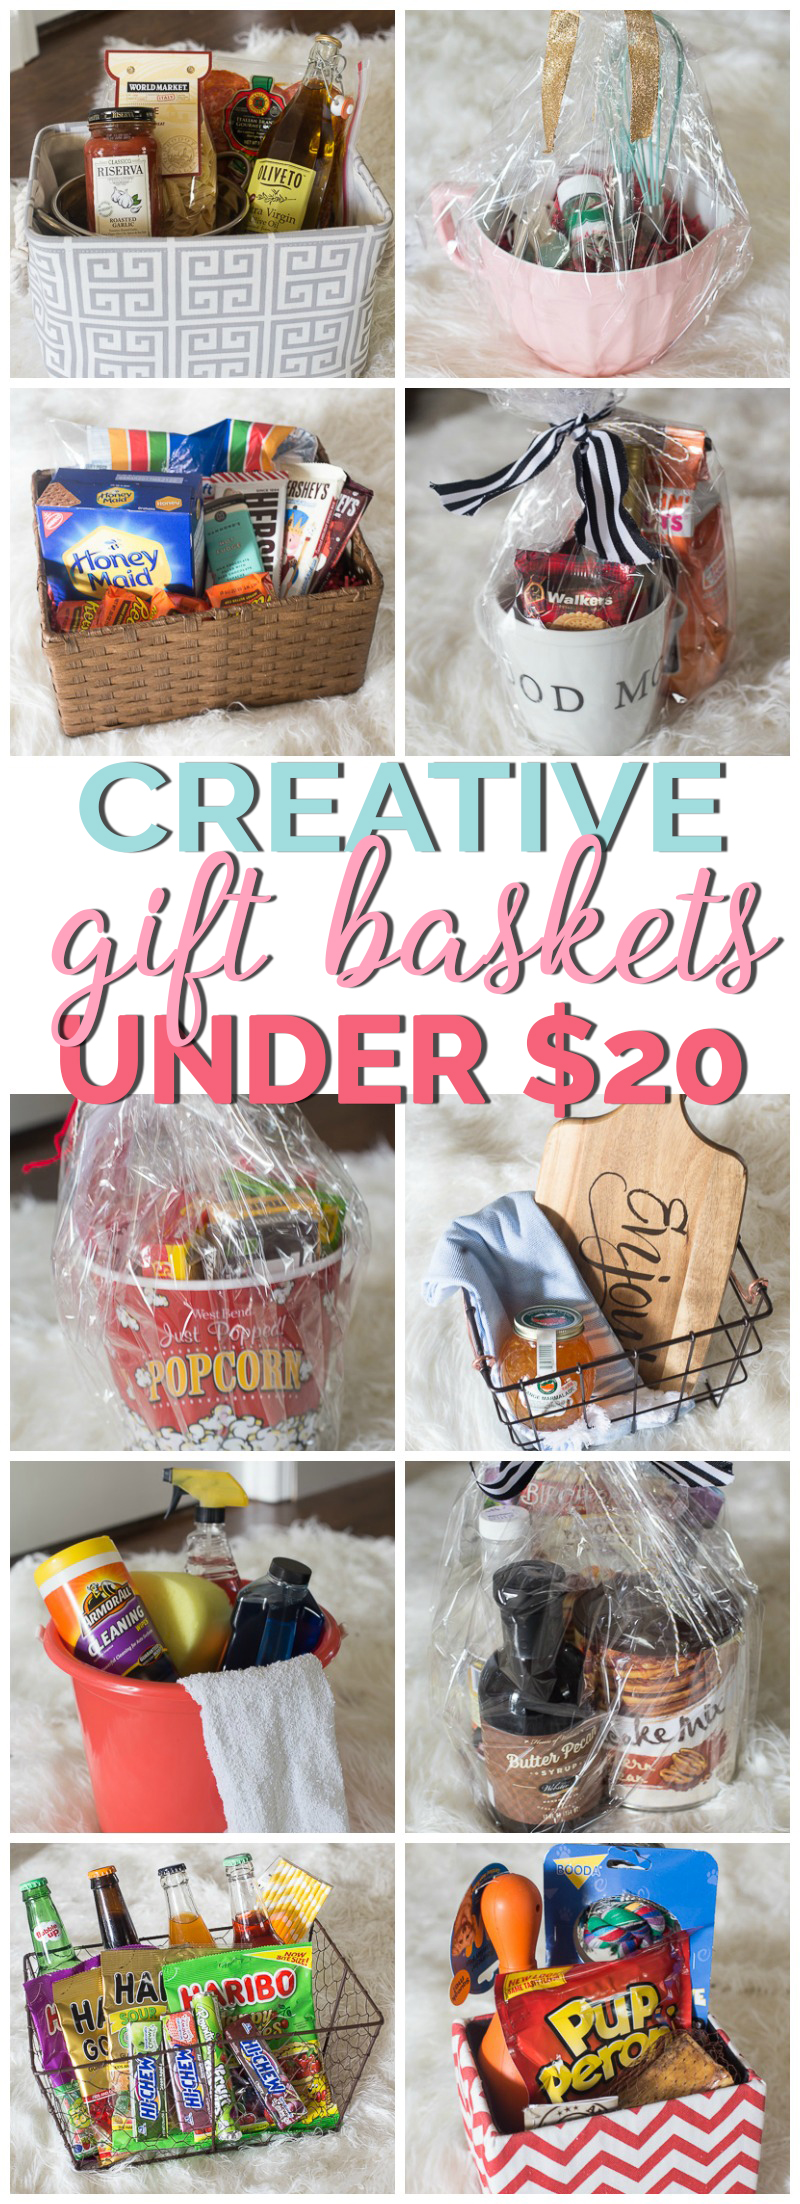 Gift Basket Ideas for $20 or less